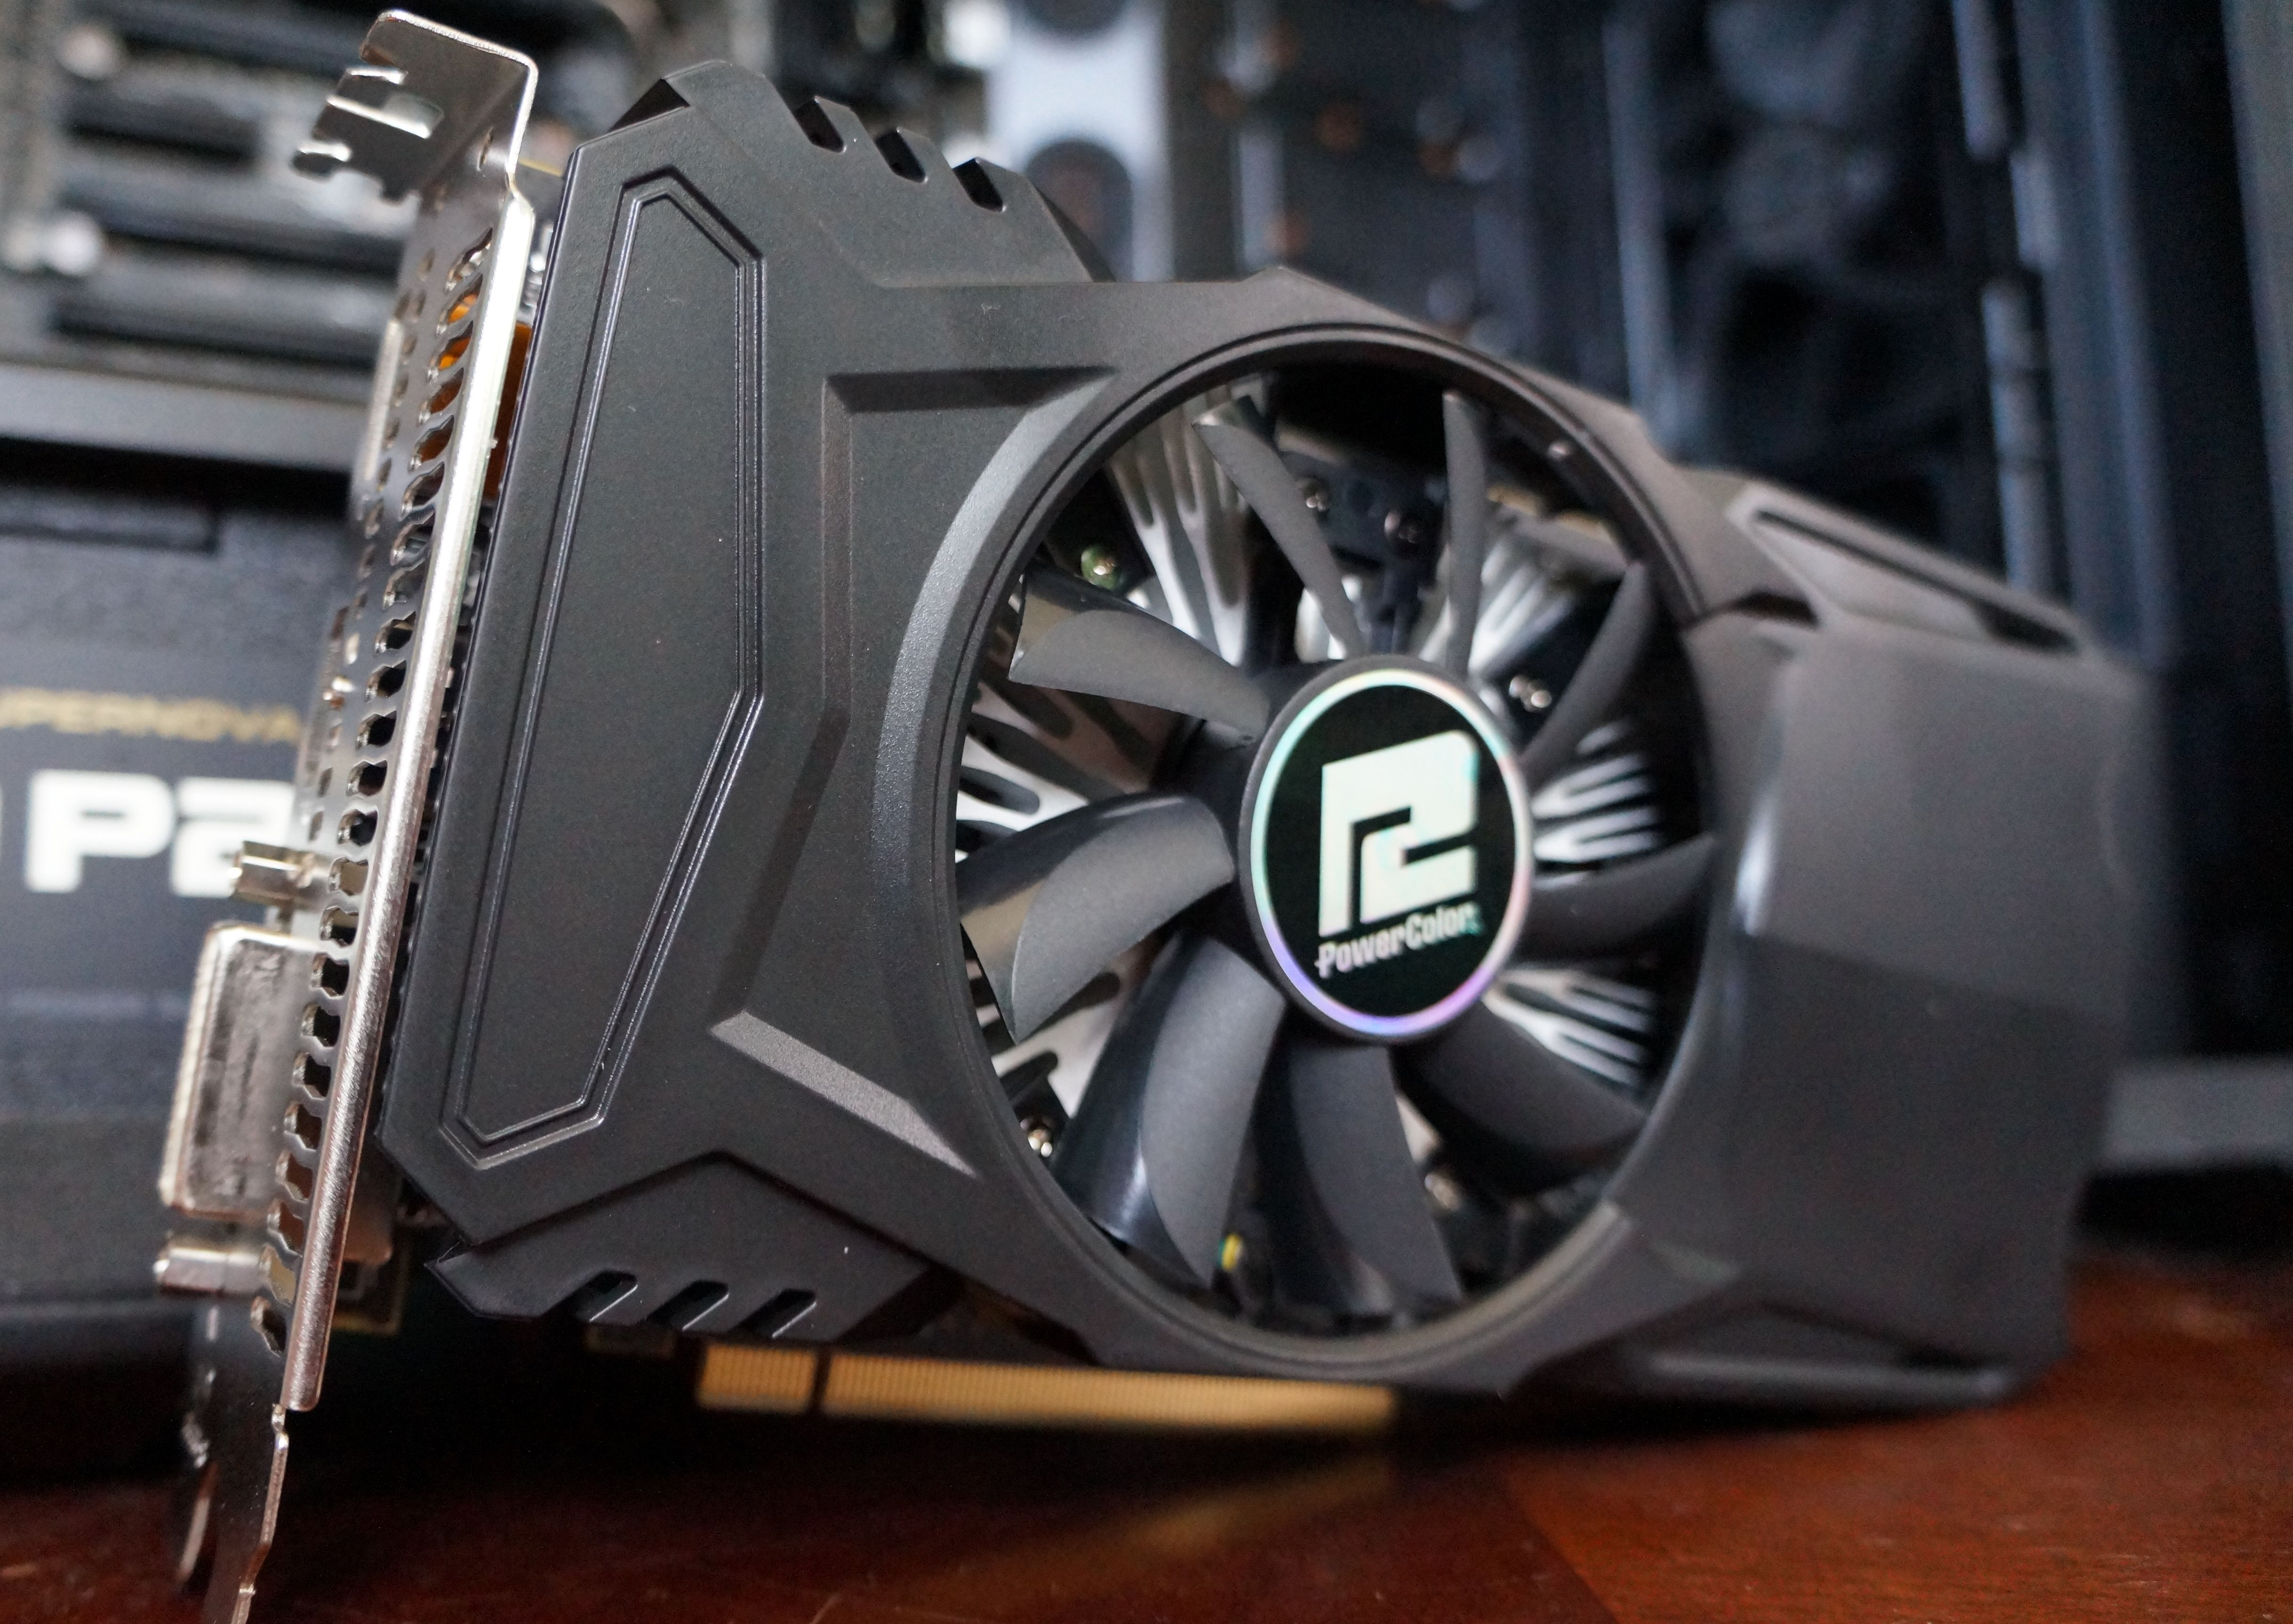 AMD Radeon RX 550 review: A thrilling budget graphics card with a